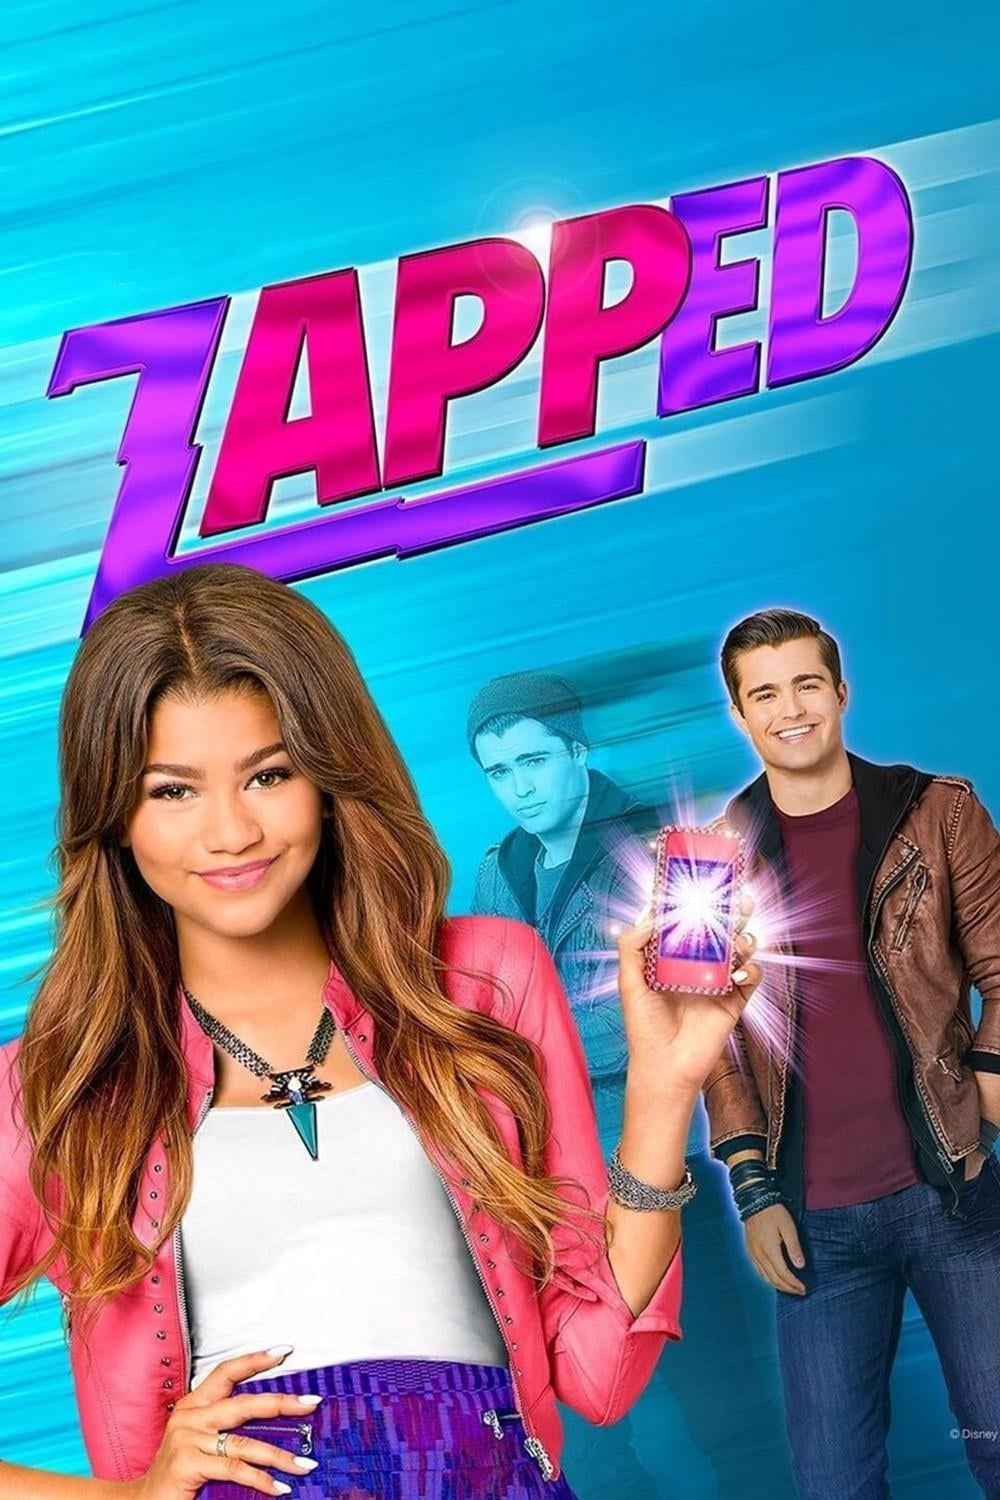 Zapped Movie Streaming Online Watch on Netflix , Tubi